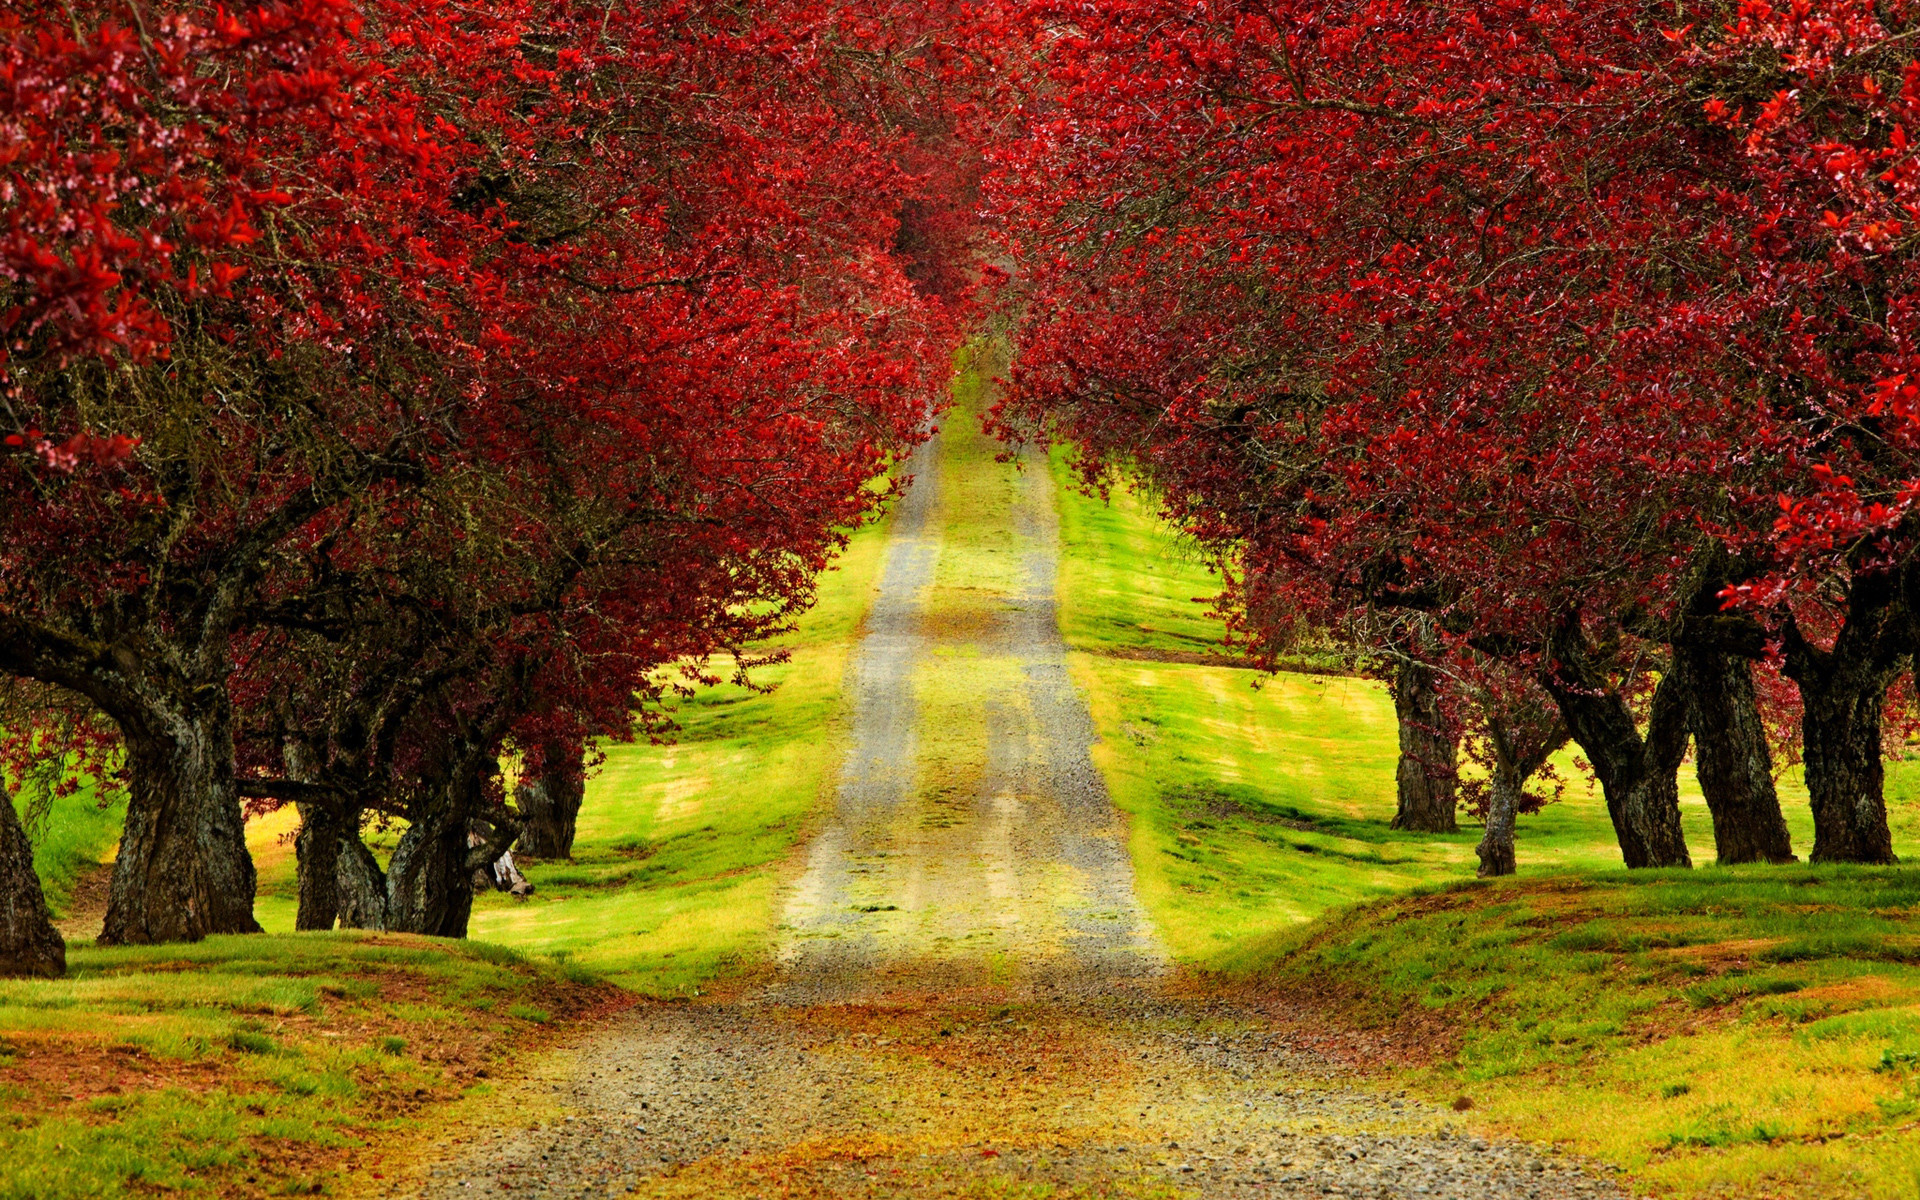 1920x1200 Amazing Roads with Trees | Red Trees Autumn Road HD Wallpaper